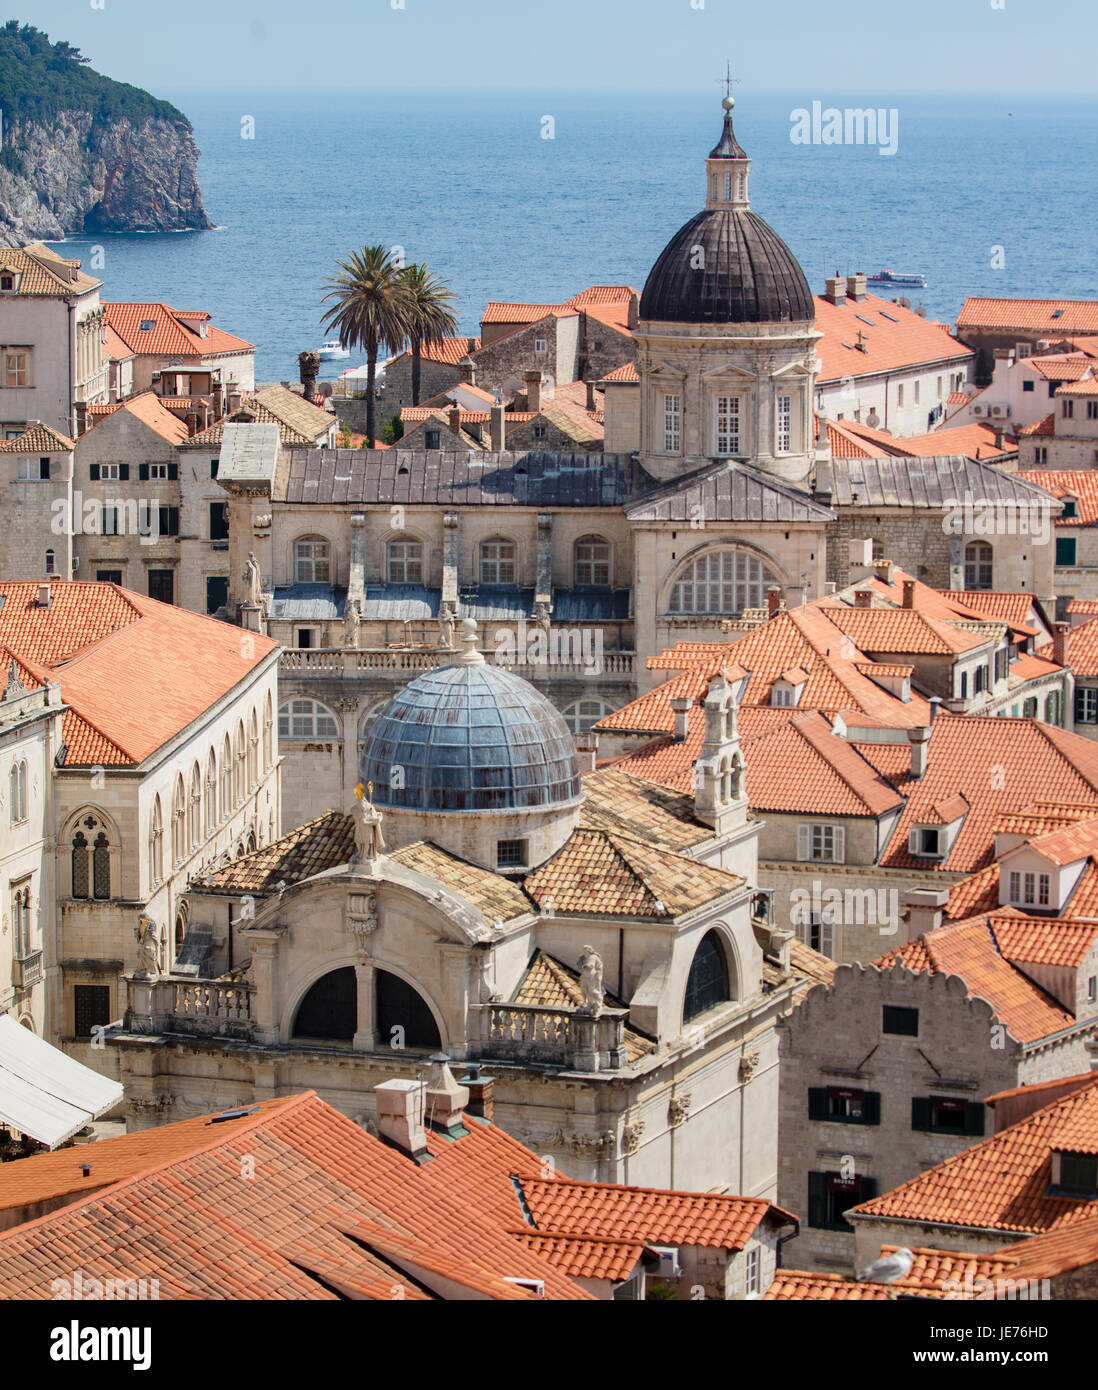 View from the massive defensive walls enclosing the beautiful red roofed medieval city of Dubrovnik on the Dalmation - Stock Image